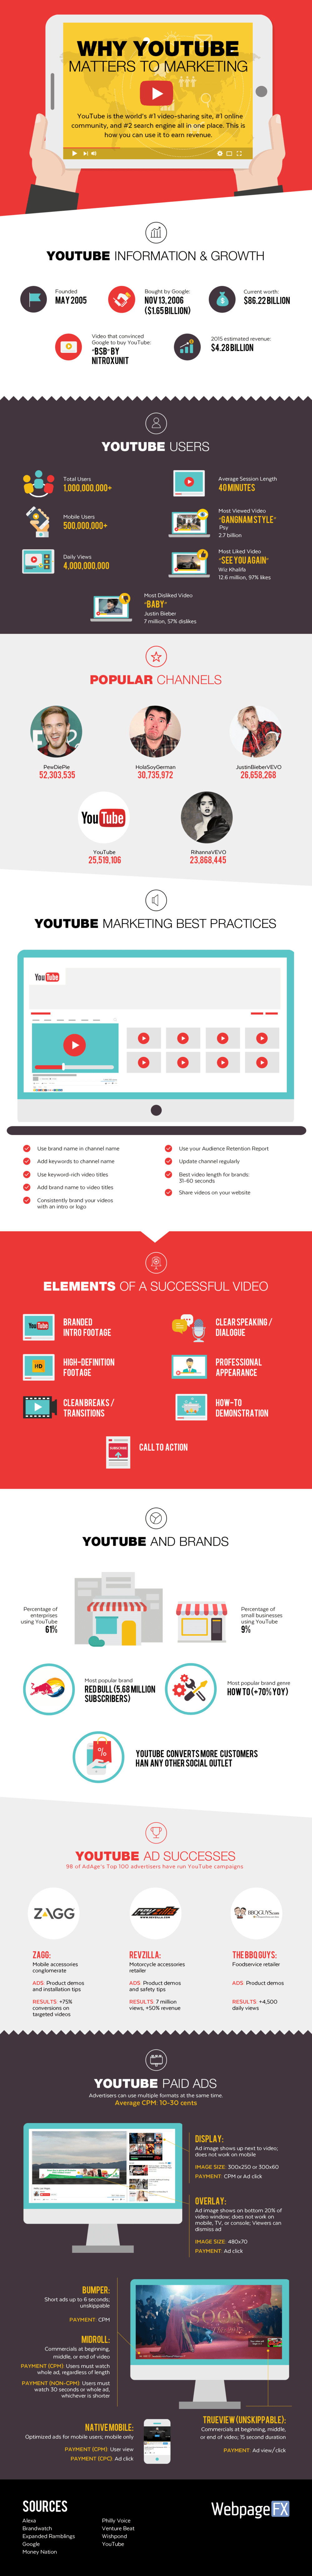 why youtube matters to marketing